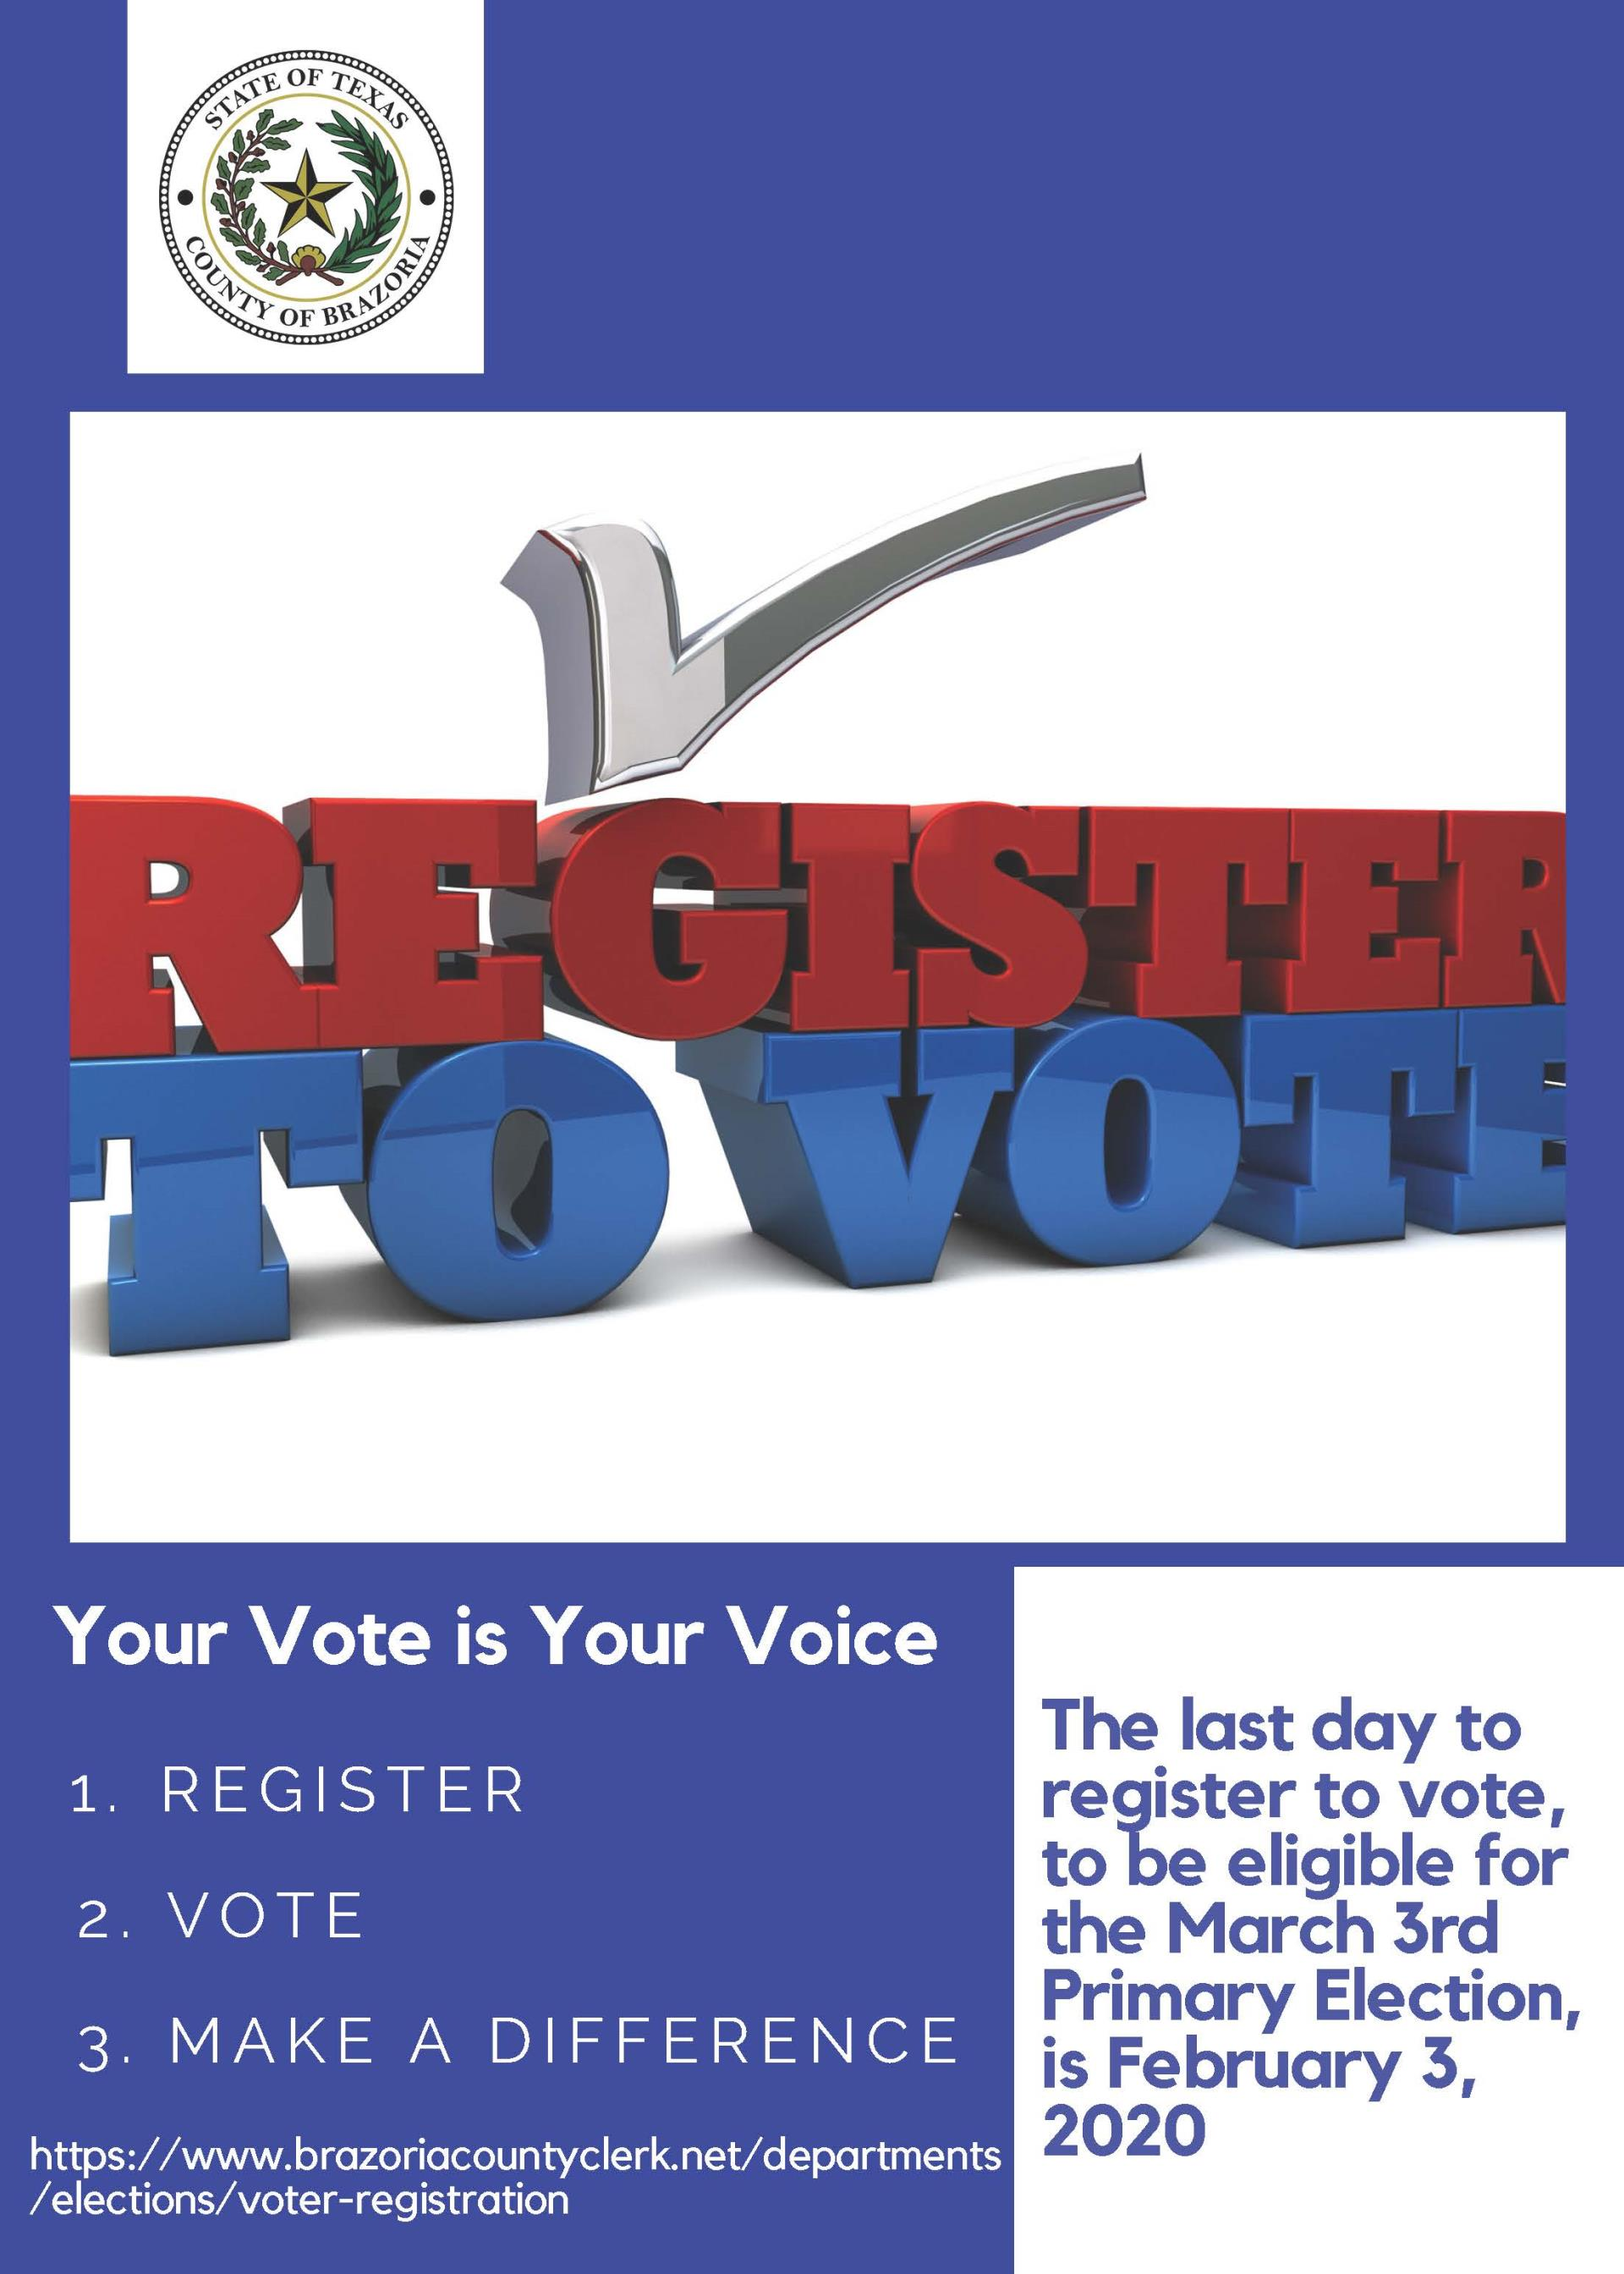 Last day to register to vote in the March 3rd Primary is February 3, 2020